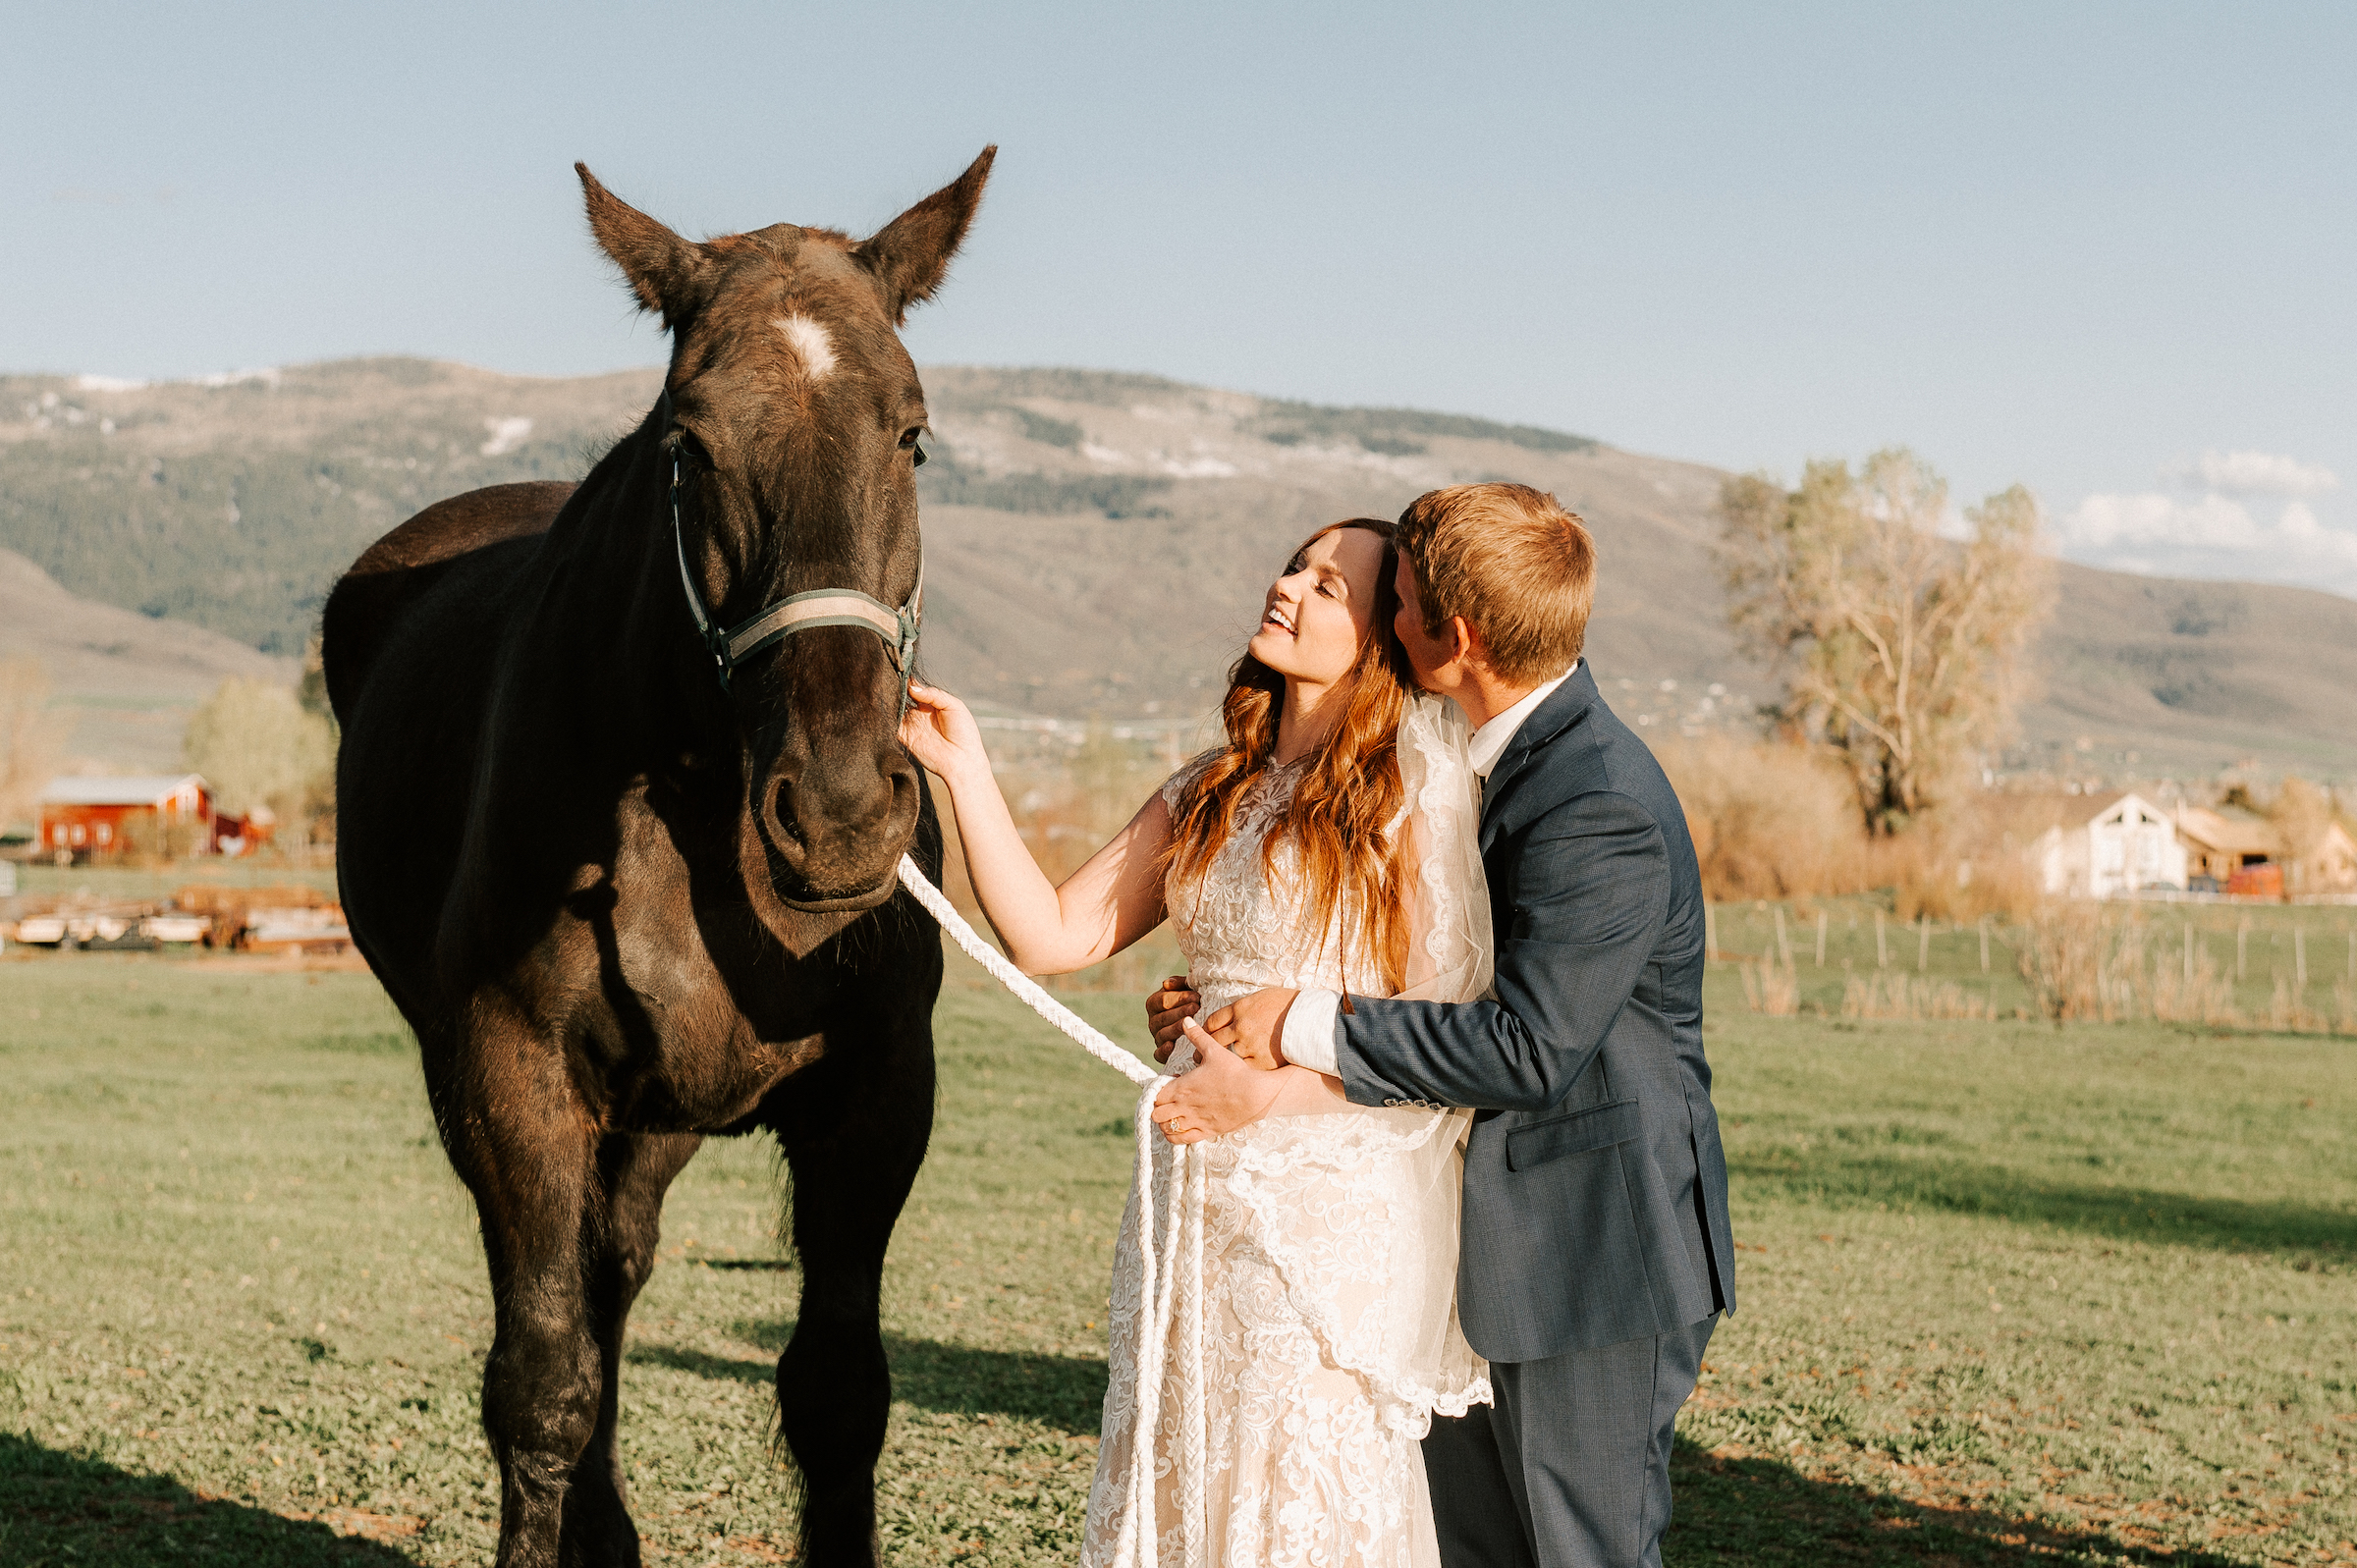 Classic Wedding Dress Cowboy Boots Horse Ranch Tew Treasures Photography 5